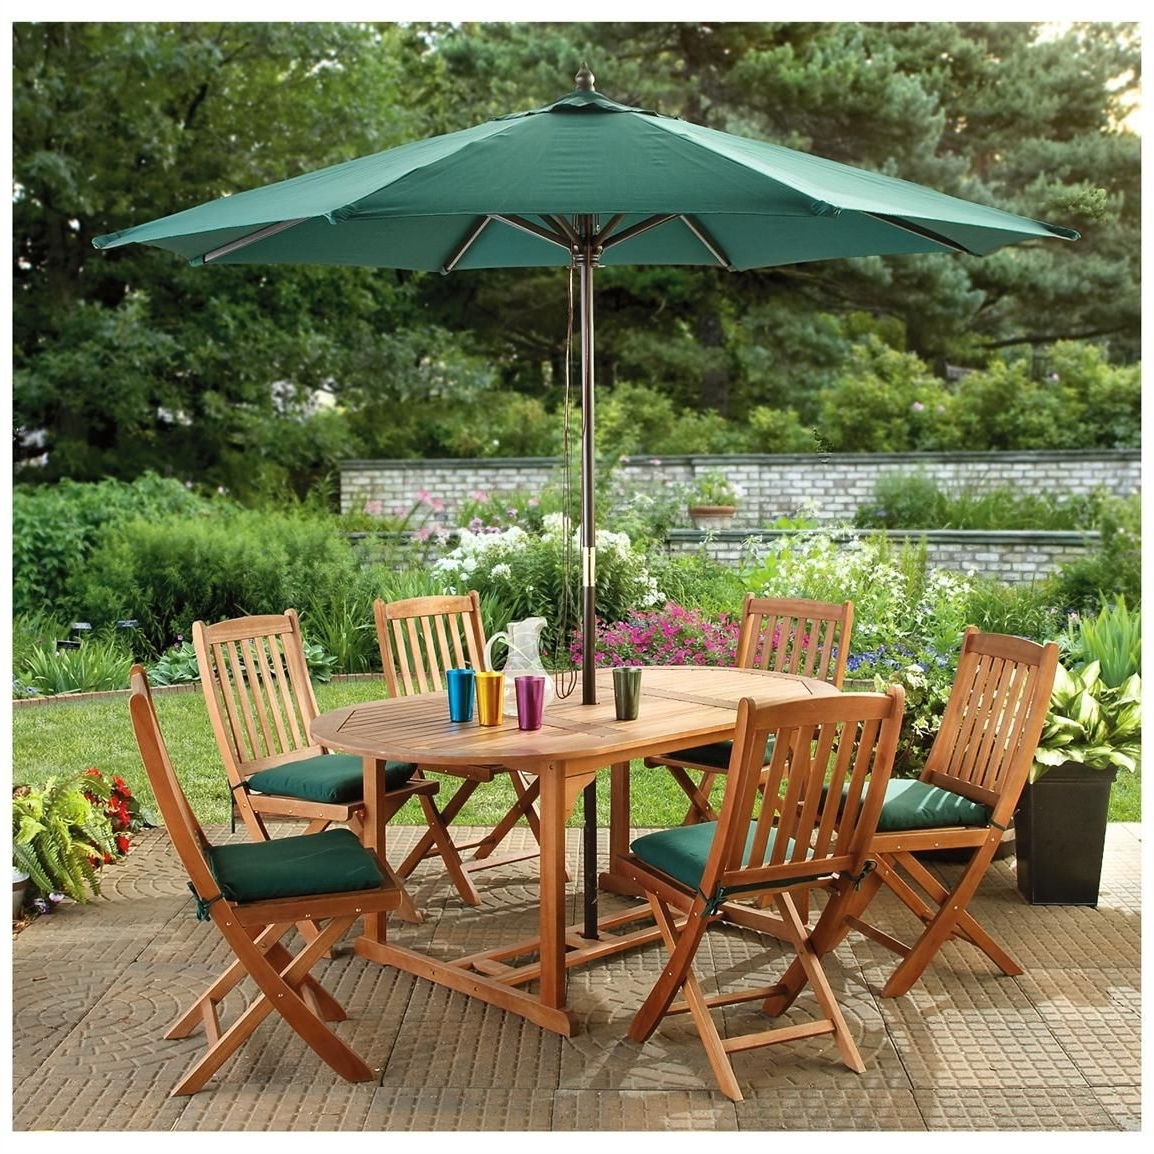 Patio Furniture With Umbrellas Regarding Most Recent Umbrellas For Patio Tables – Theradmommy (Gallery 12 of 20)